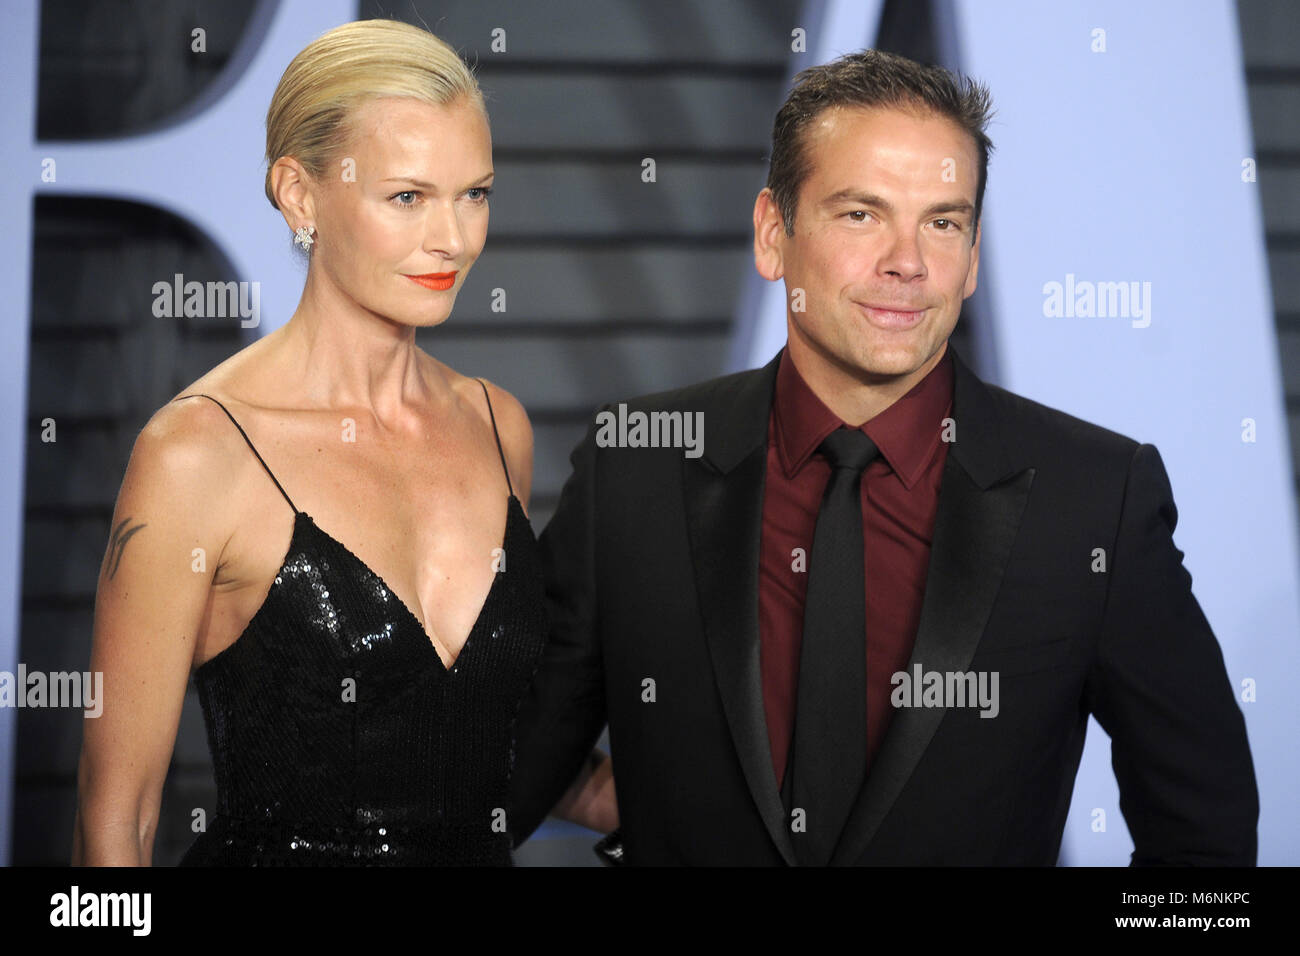 Sarah Murdoch And Lachlan Murdoch Attending The 2018 Vanity Fair Stock  Photo: 176268132   Alamy